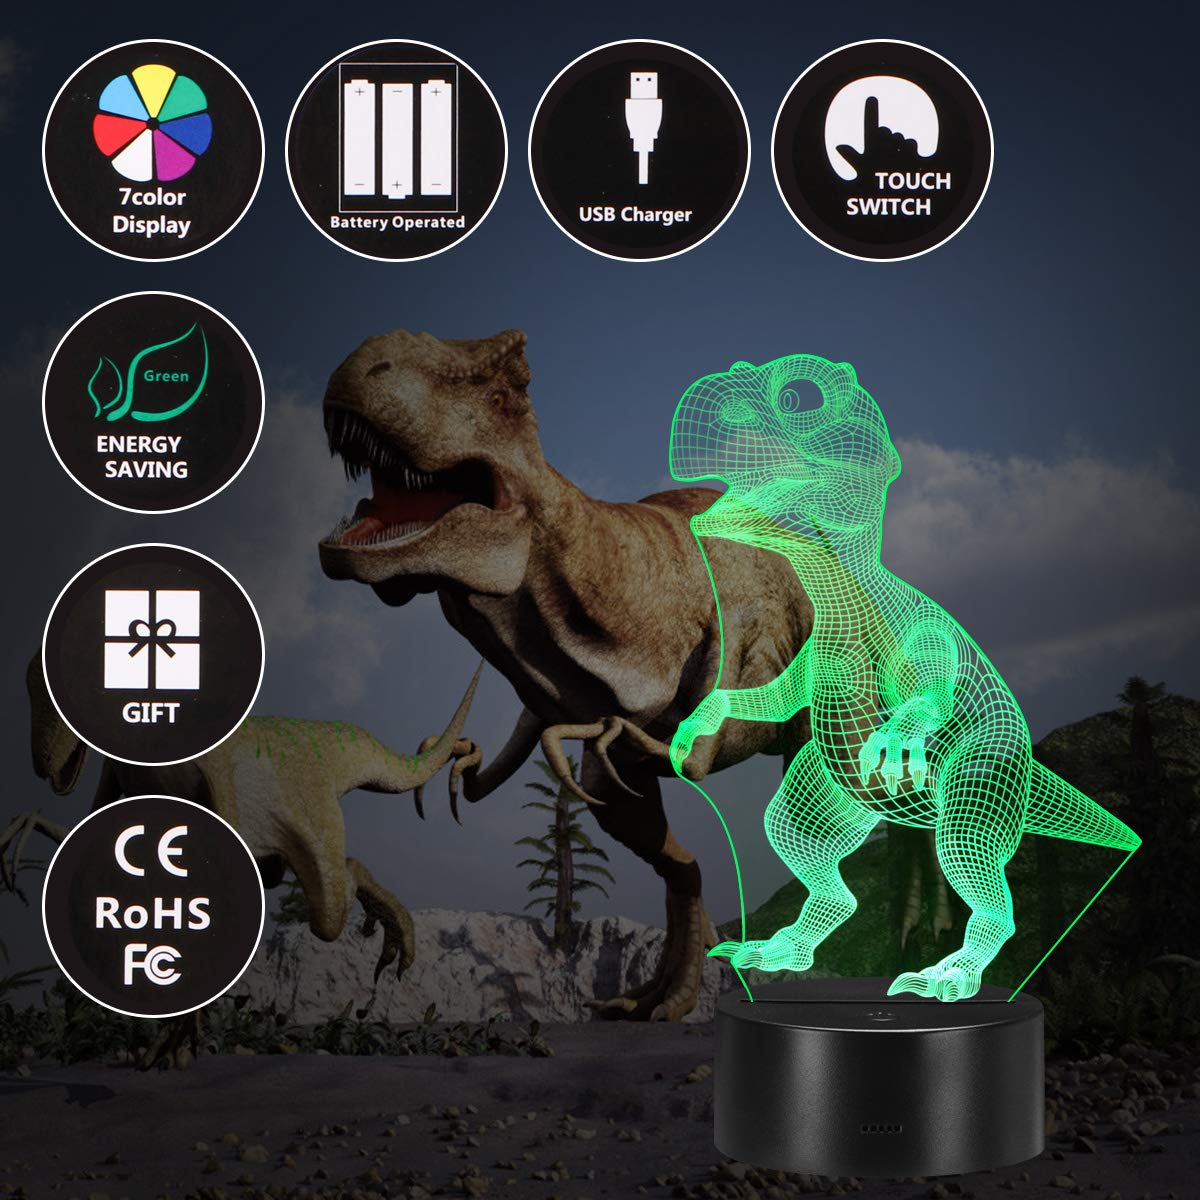 Holybo Kids Boys Toys,3D Night Light Dinosaur Toys for Boys//Kids//Chlidren Bedroom Lamps,Brithday//Xams Gifts Dinosaur Night Light with 7 Colors Changing. T-Rex Baby